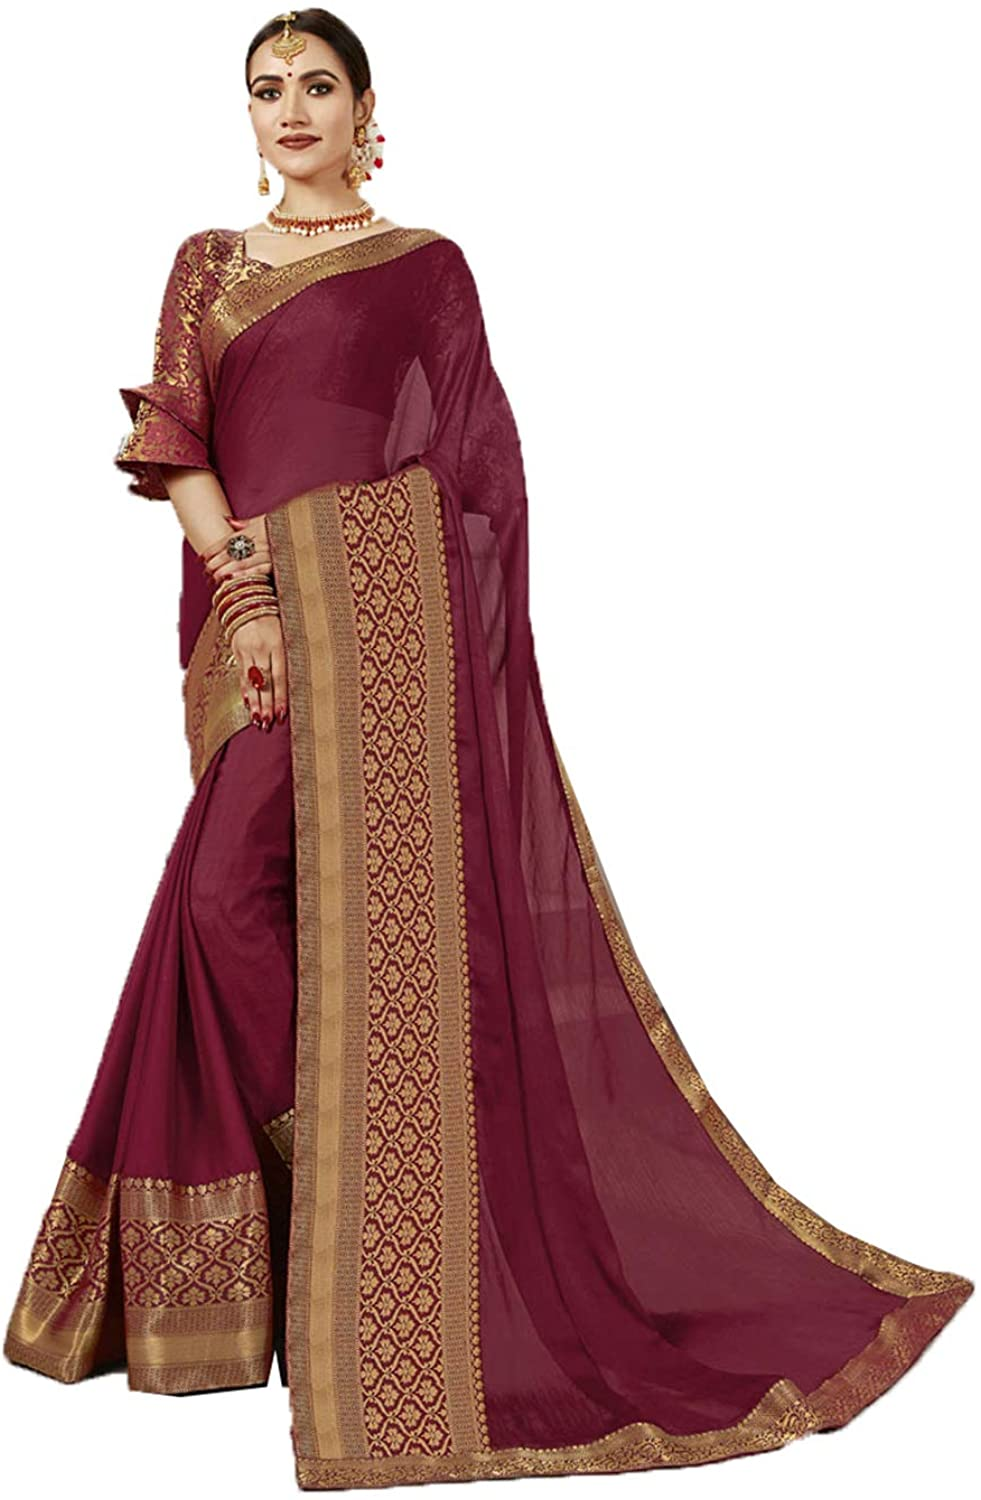 Saree for Women Bollywood Wedding Designer Maroon Sari with Unstitched Blouse. ICW2559-1